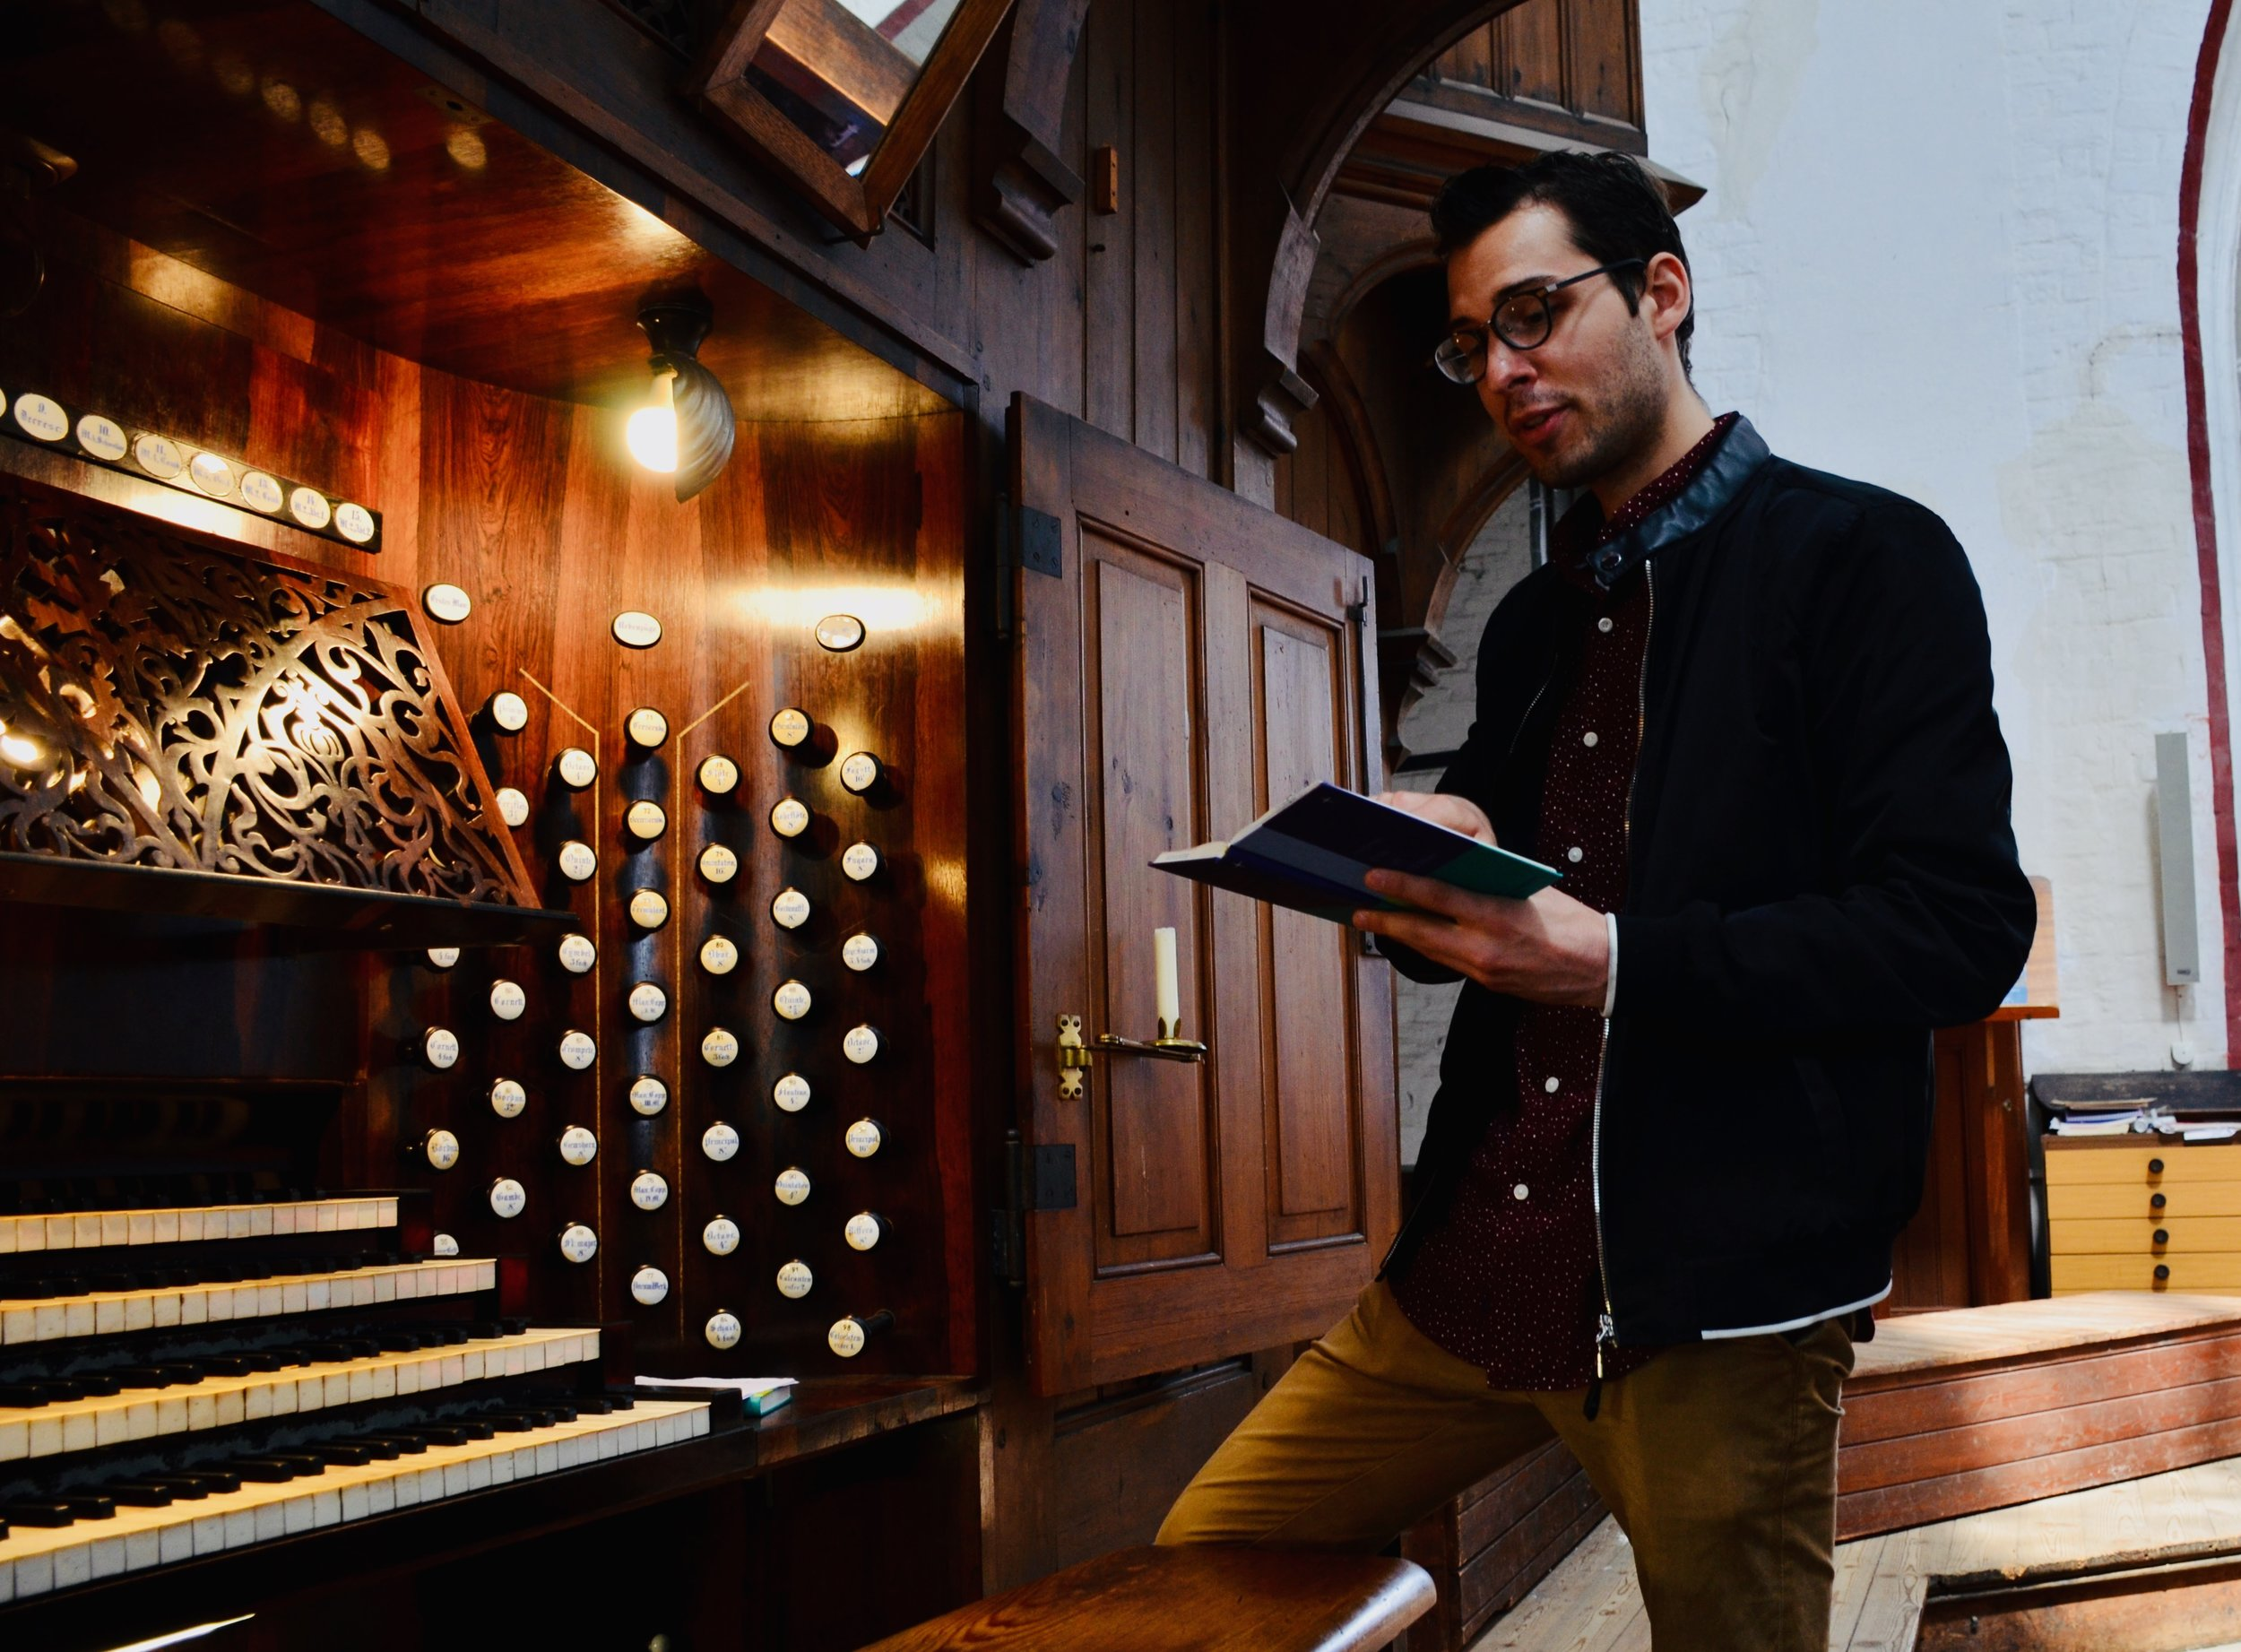 Nick Capozzoli examines the hymnal of 1871 Schwerin Dom.